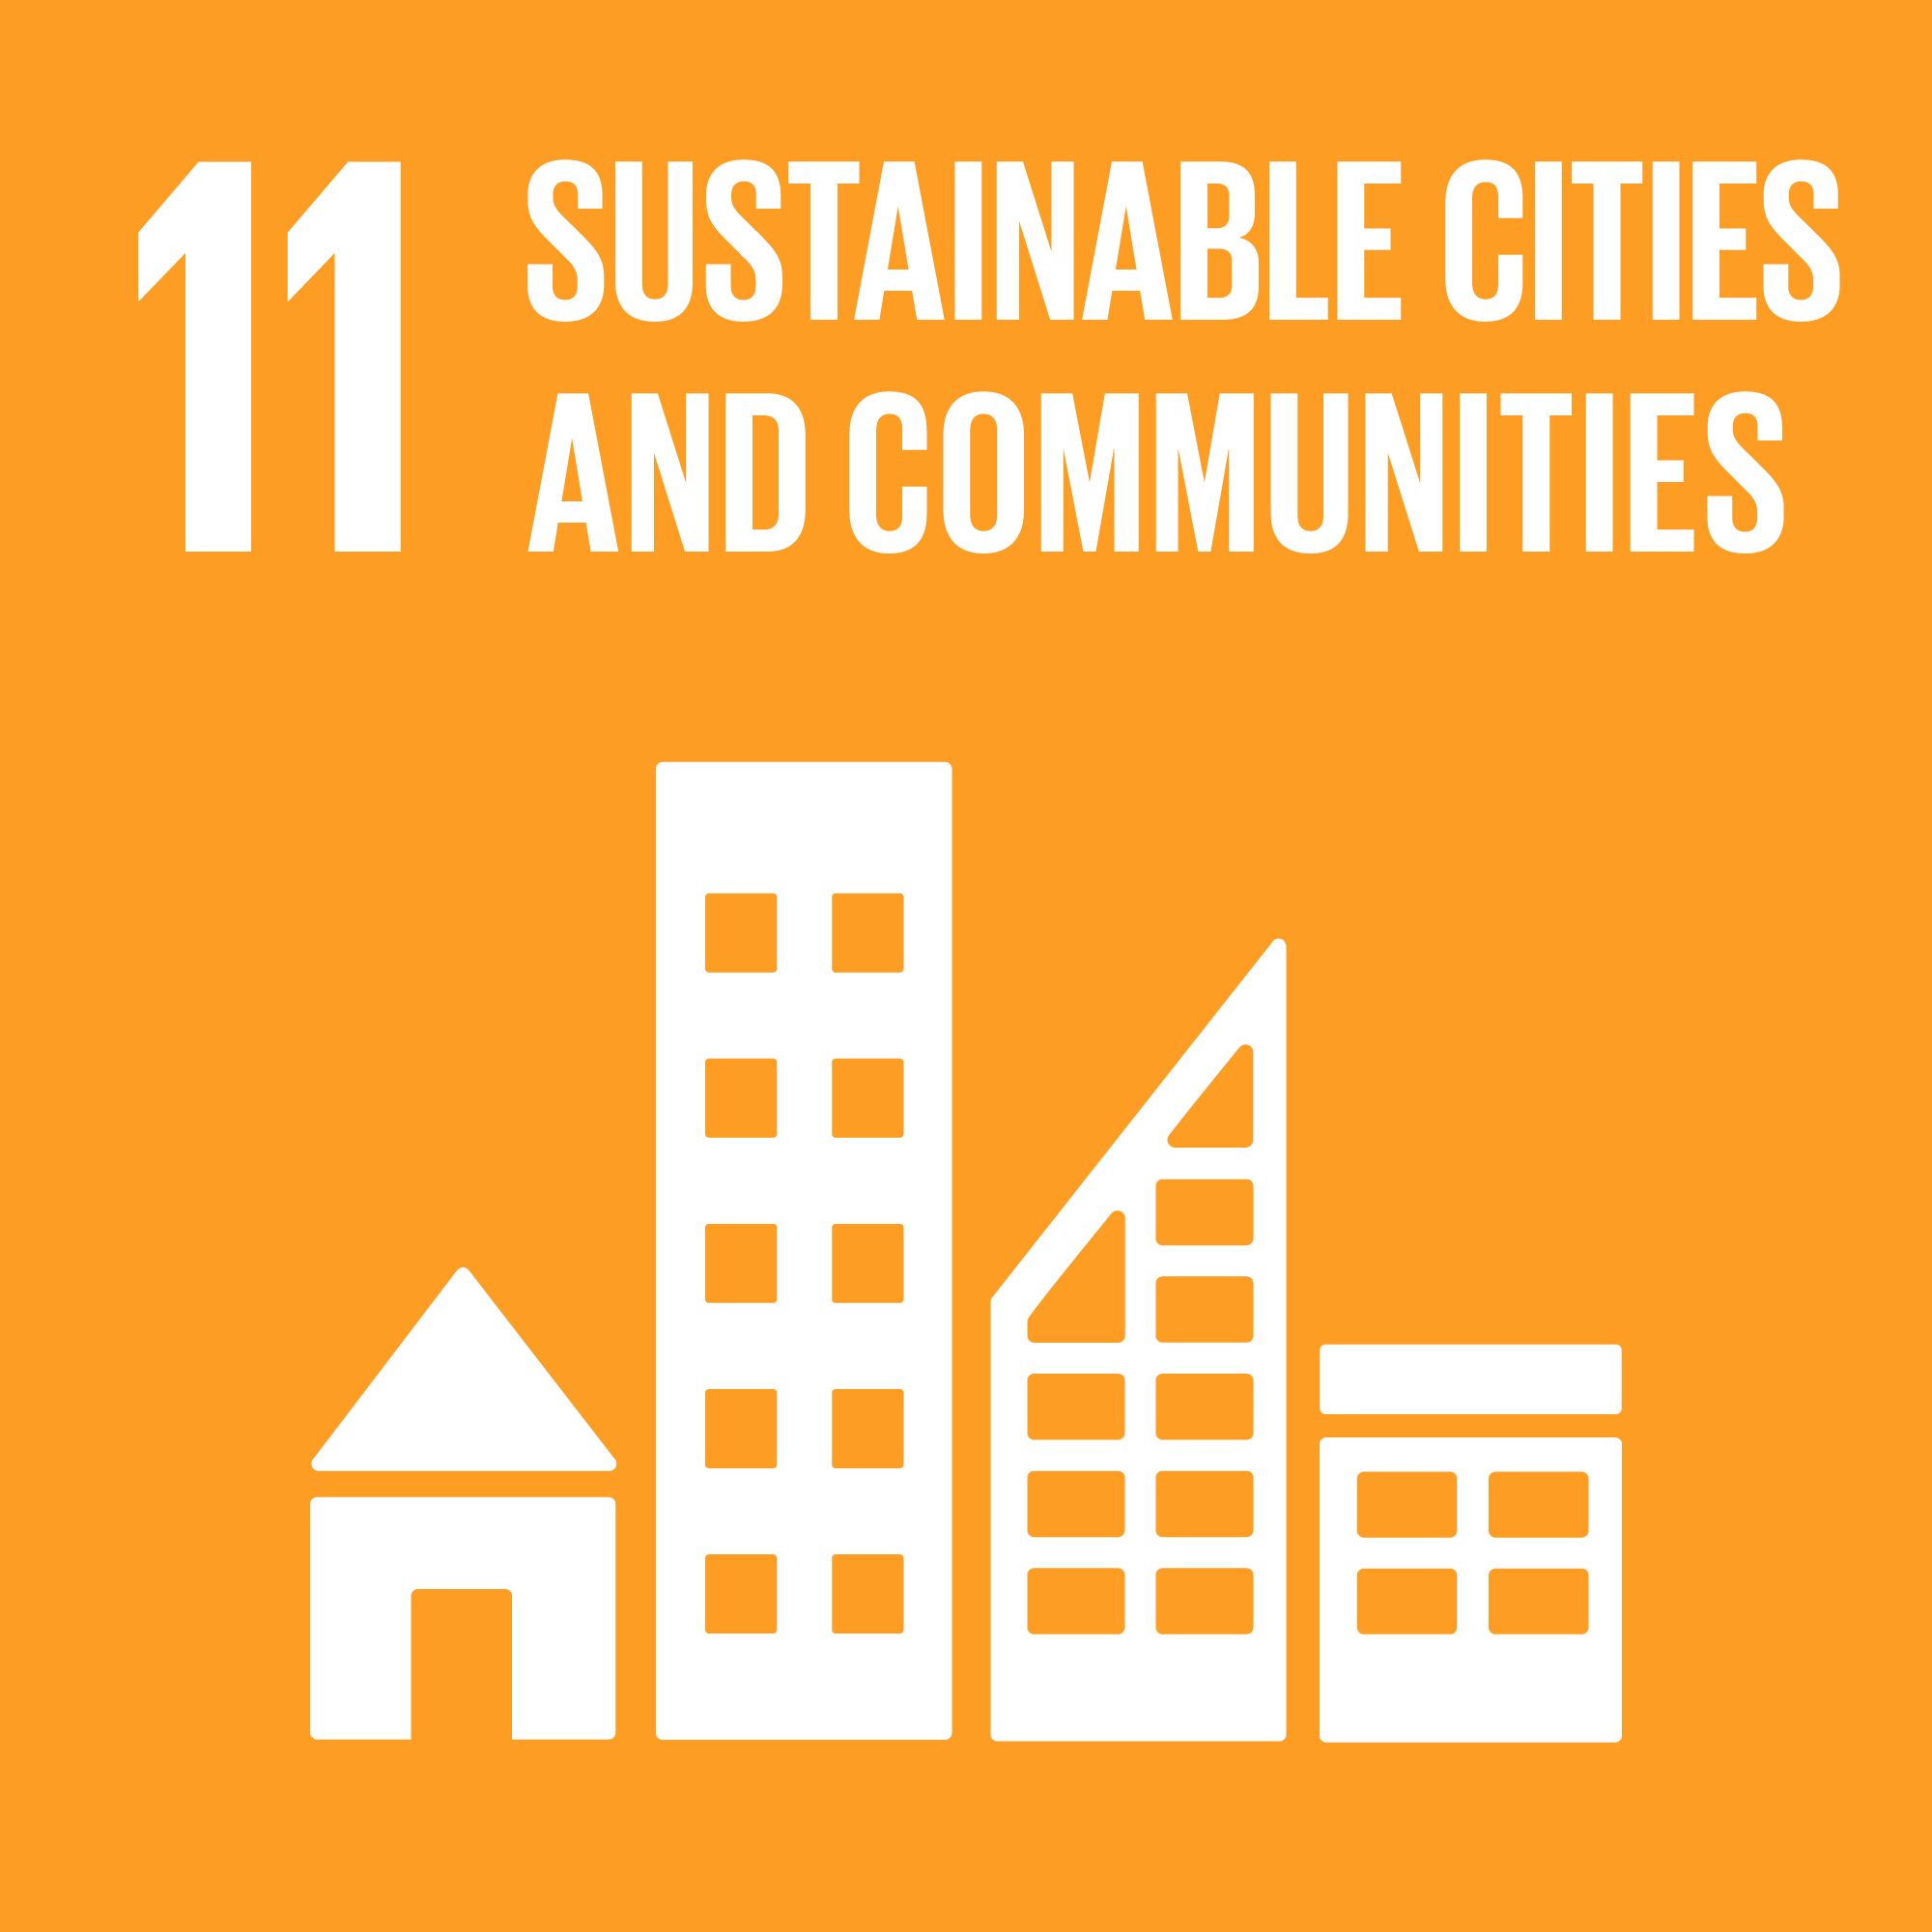 Sustainable Development Goal 11: Cities and communities